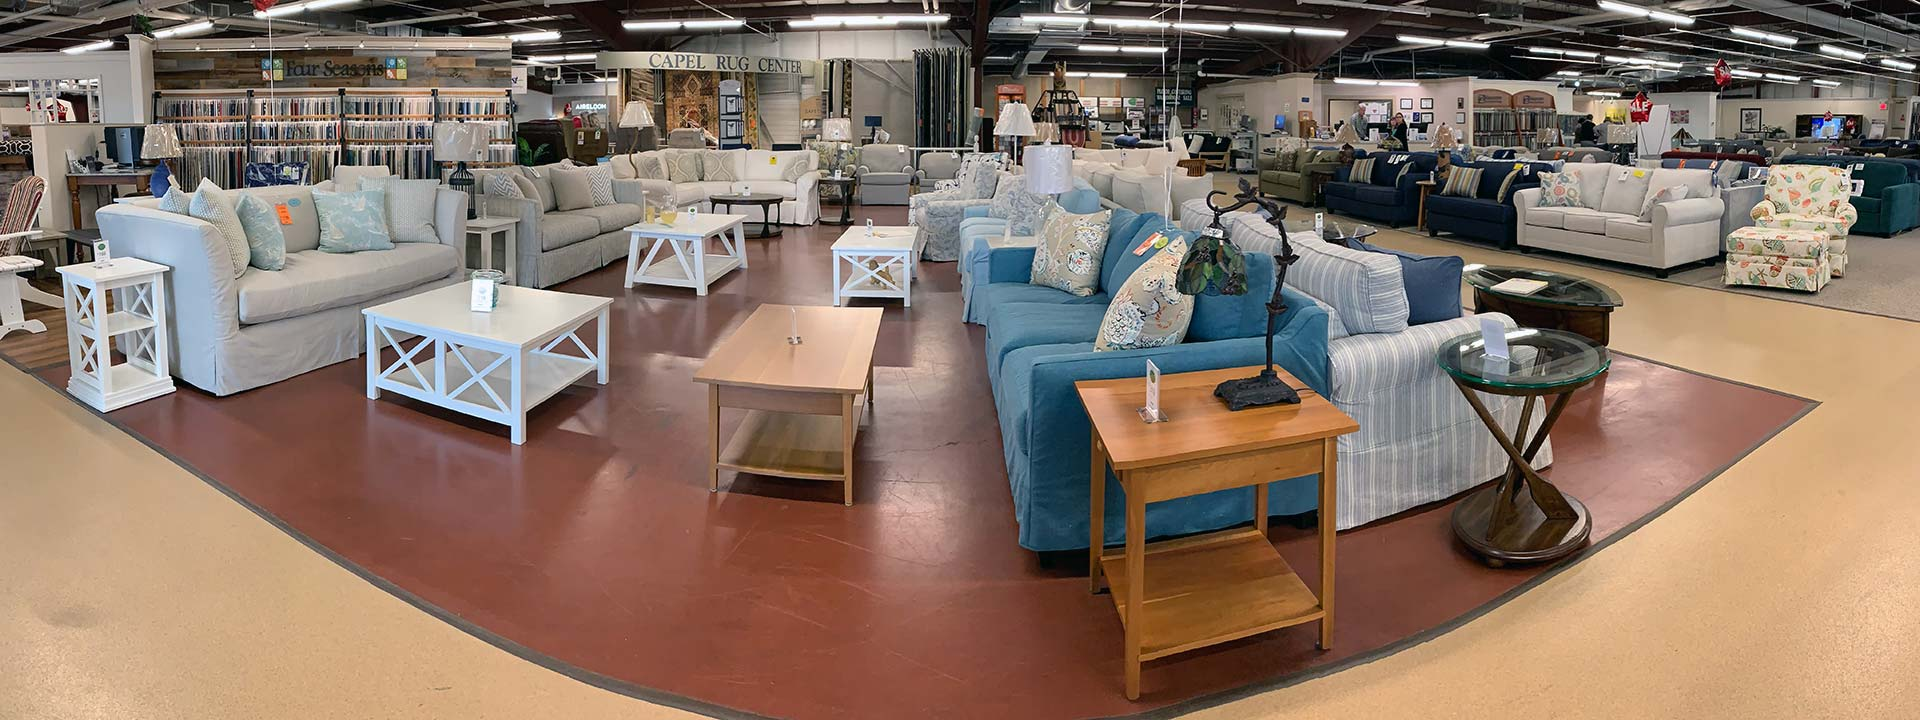 The 3 types of leather differ in how they are processed, which affects appearance, durability, and cost. Maine furniture store offering living room furniture ...